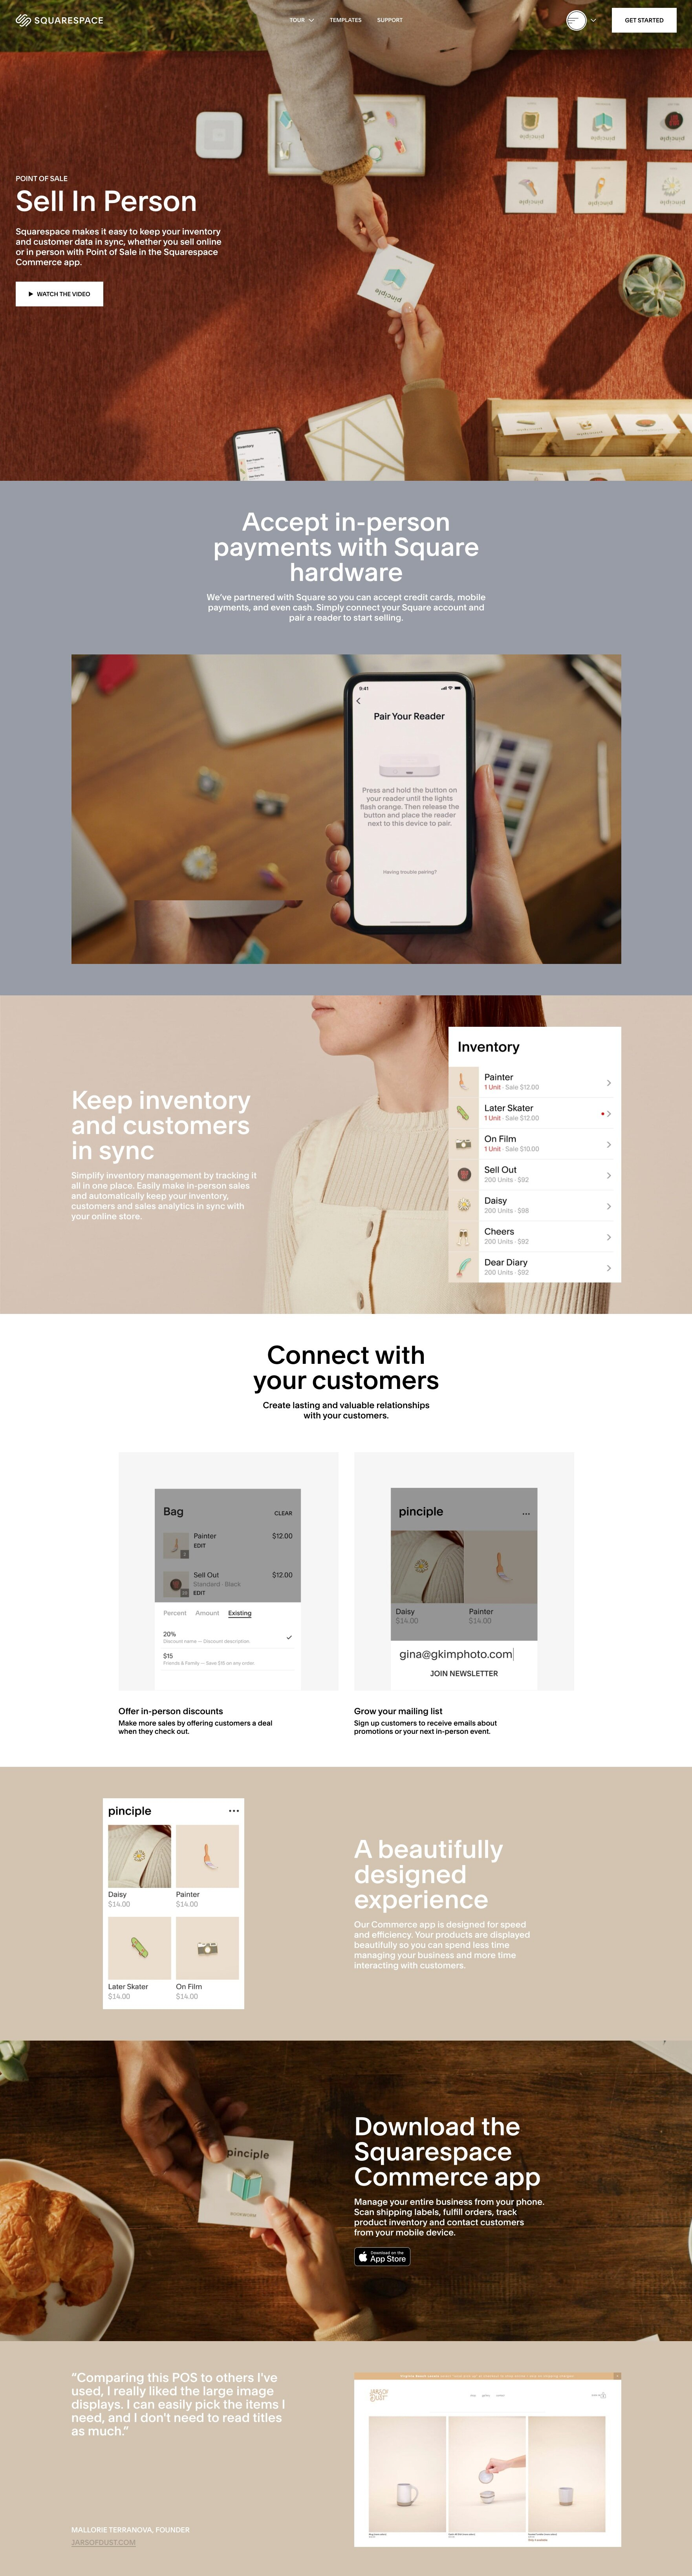 screencapture-squarespace-ecommerce-point-of-sale-2019-11-07-10_48_33.jpg